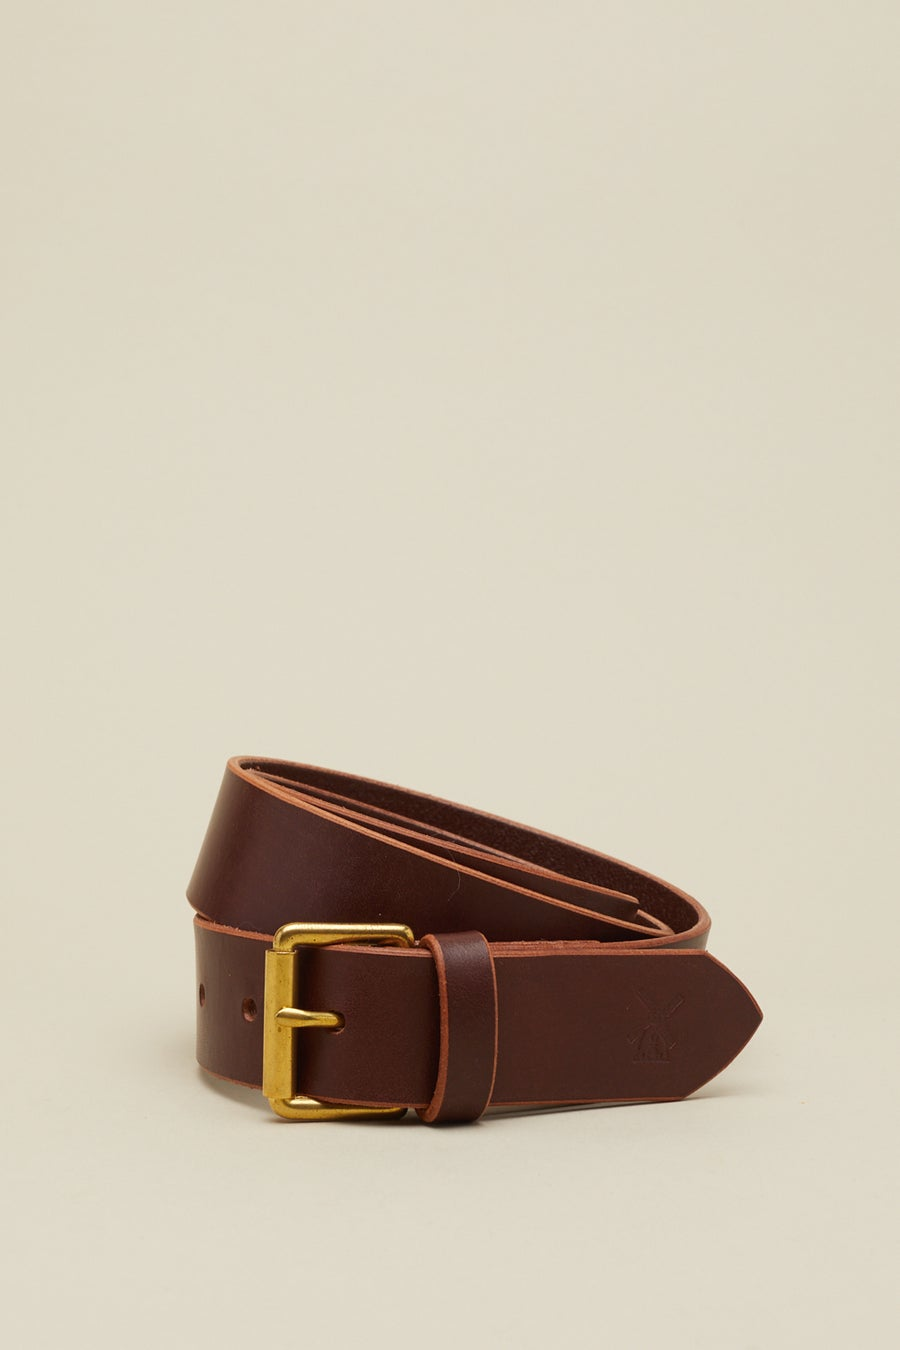 Image of Roller Buckle in Chestnut